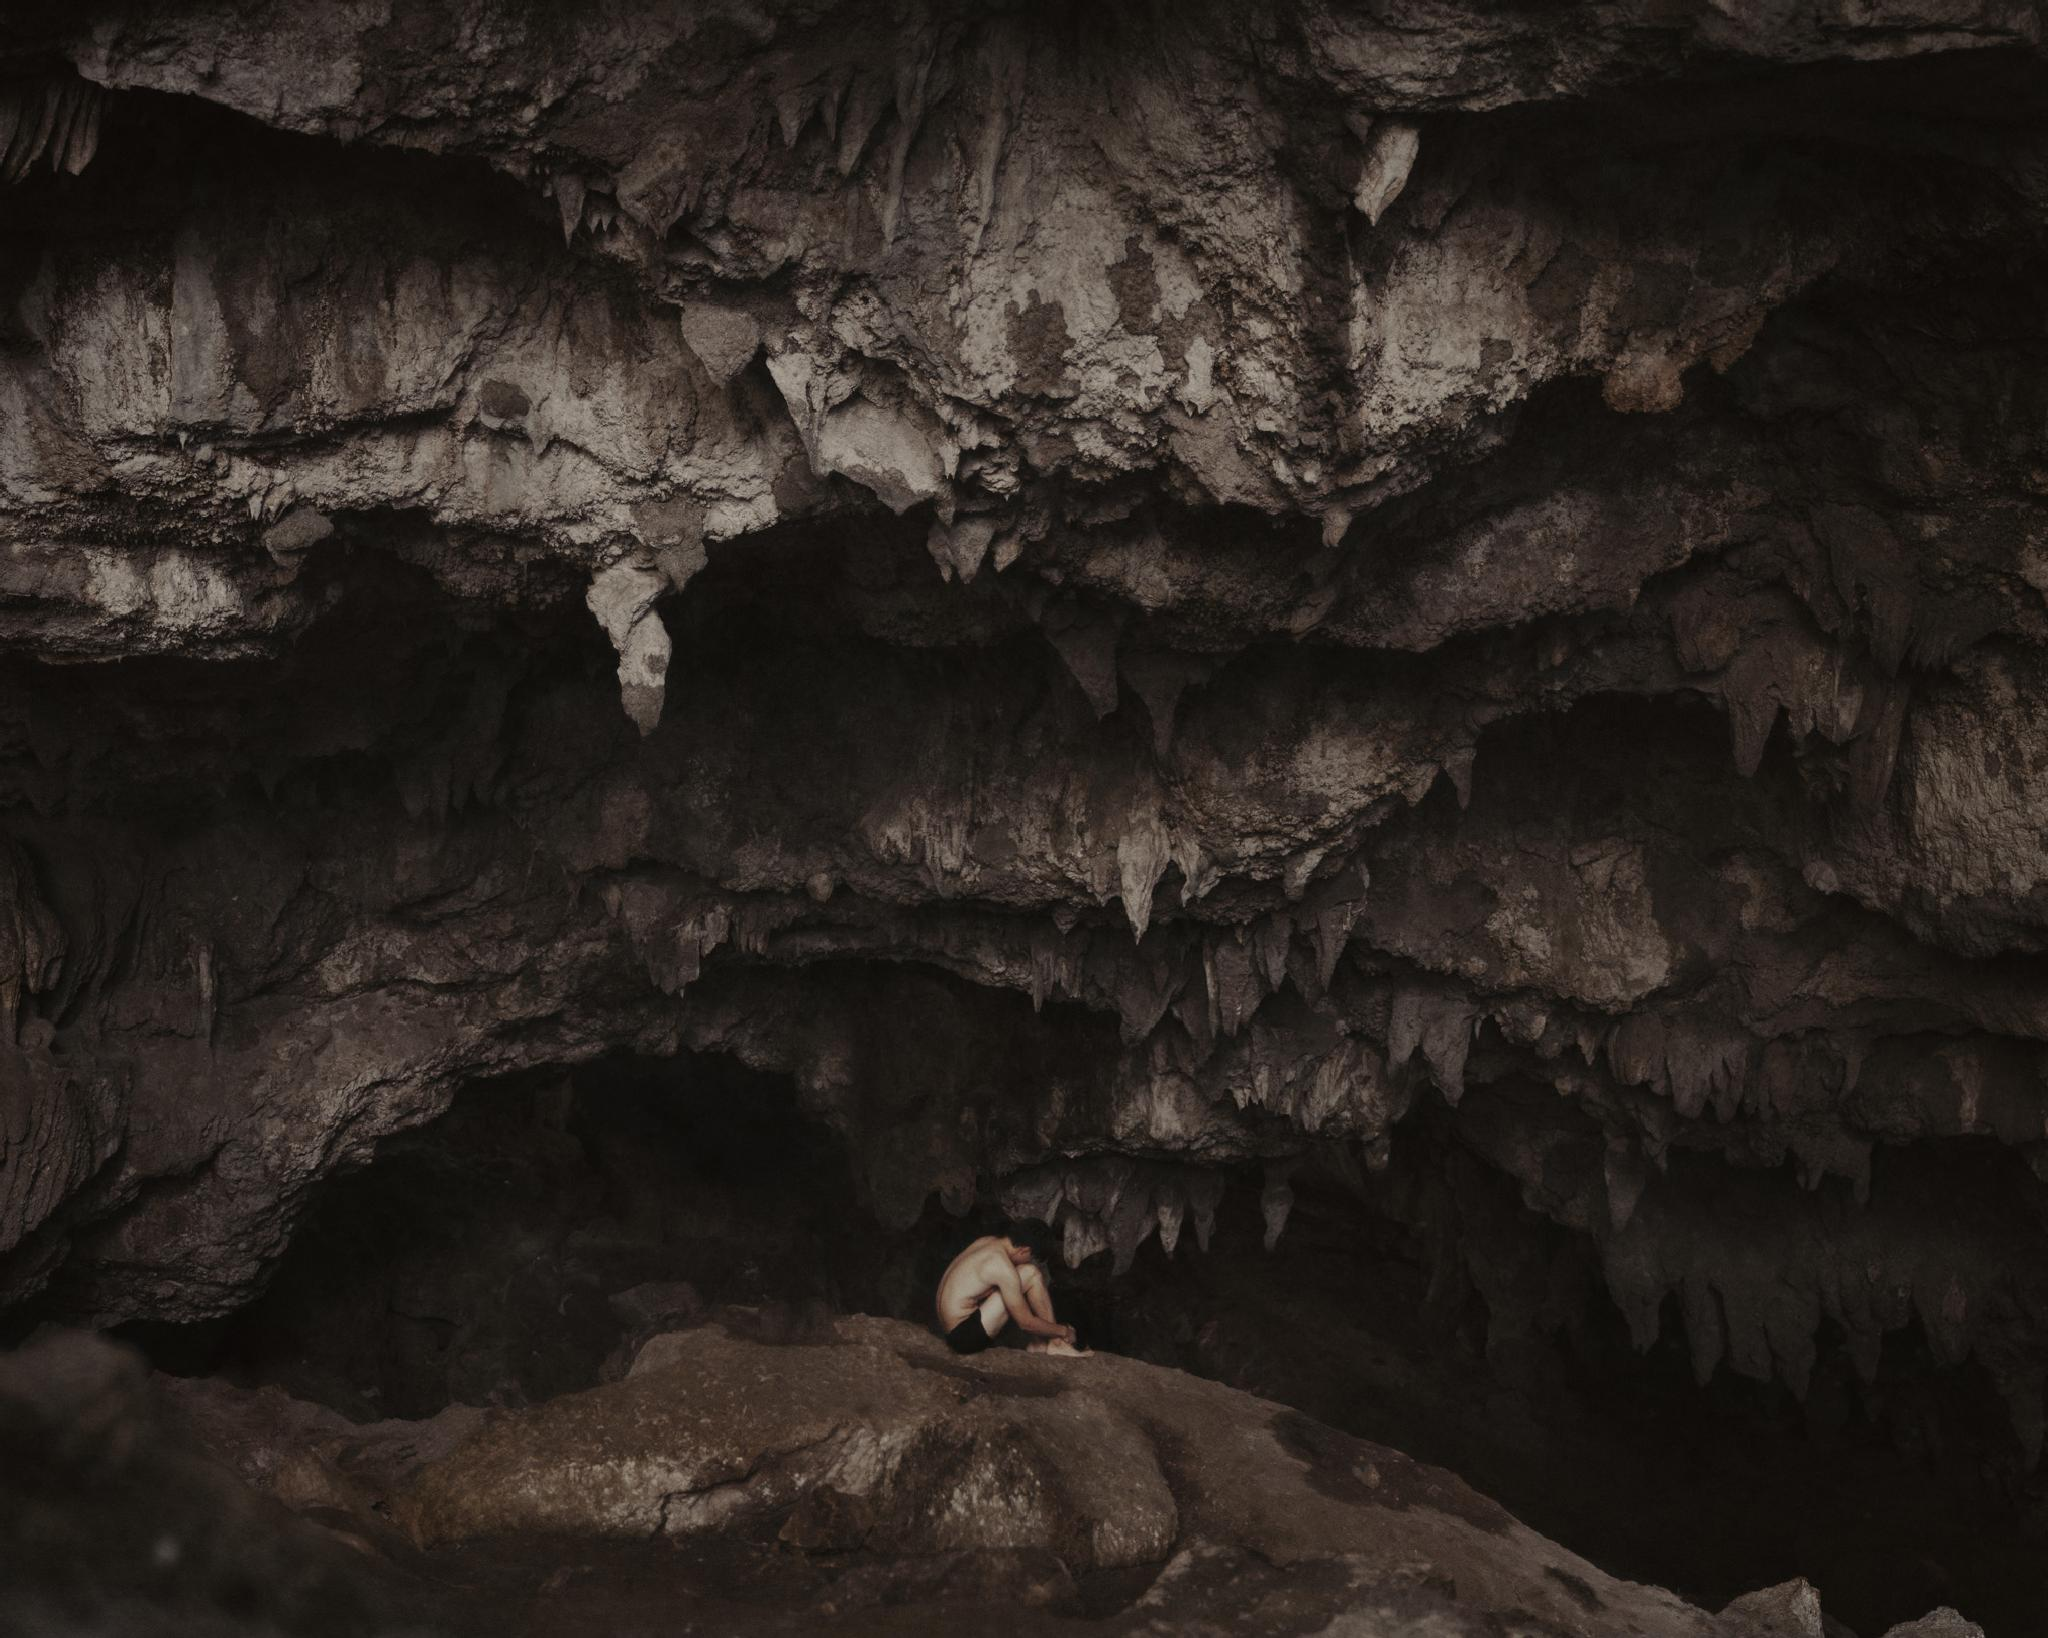 Under the earth by Mike Alegado